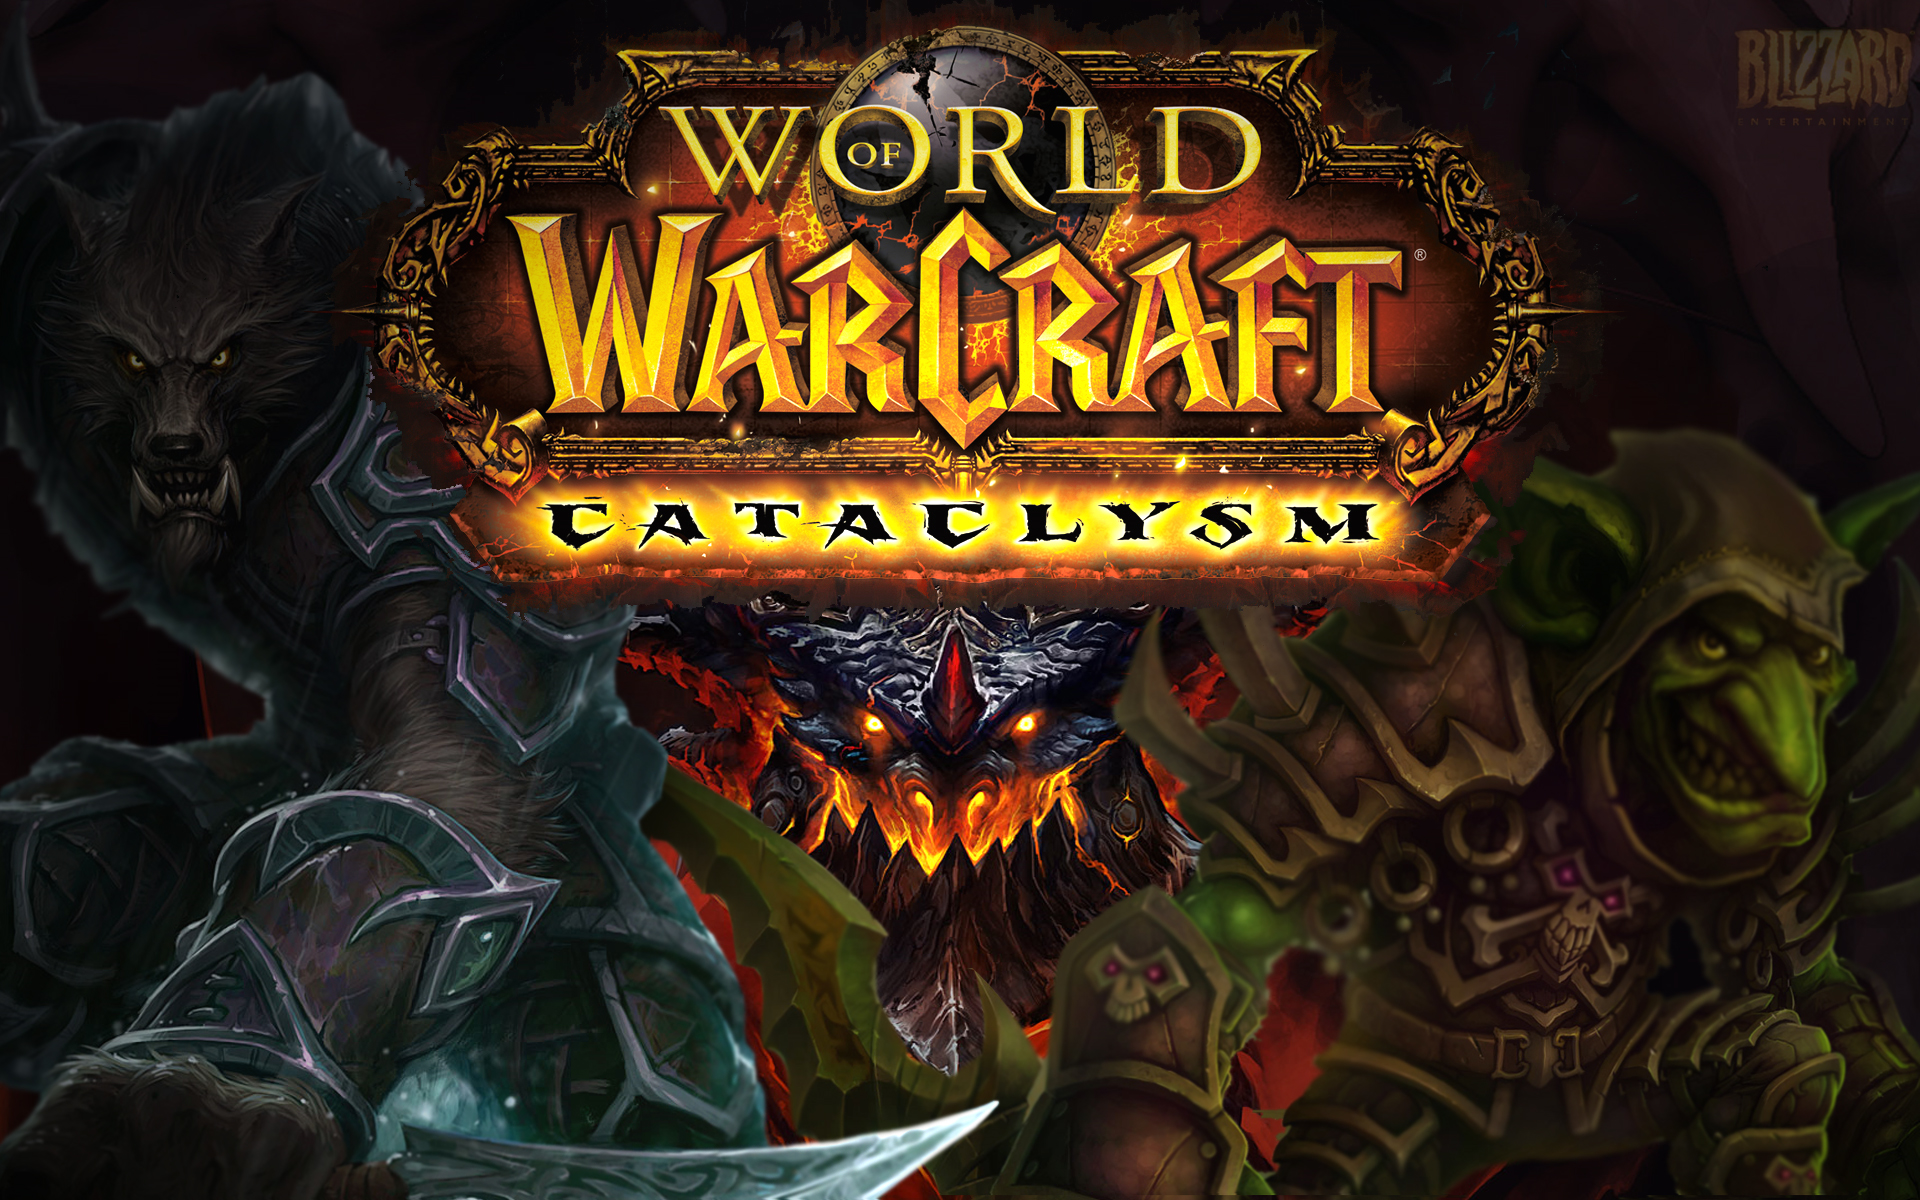 On our Website we offer to download all World of Warcraft Patches and